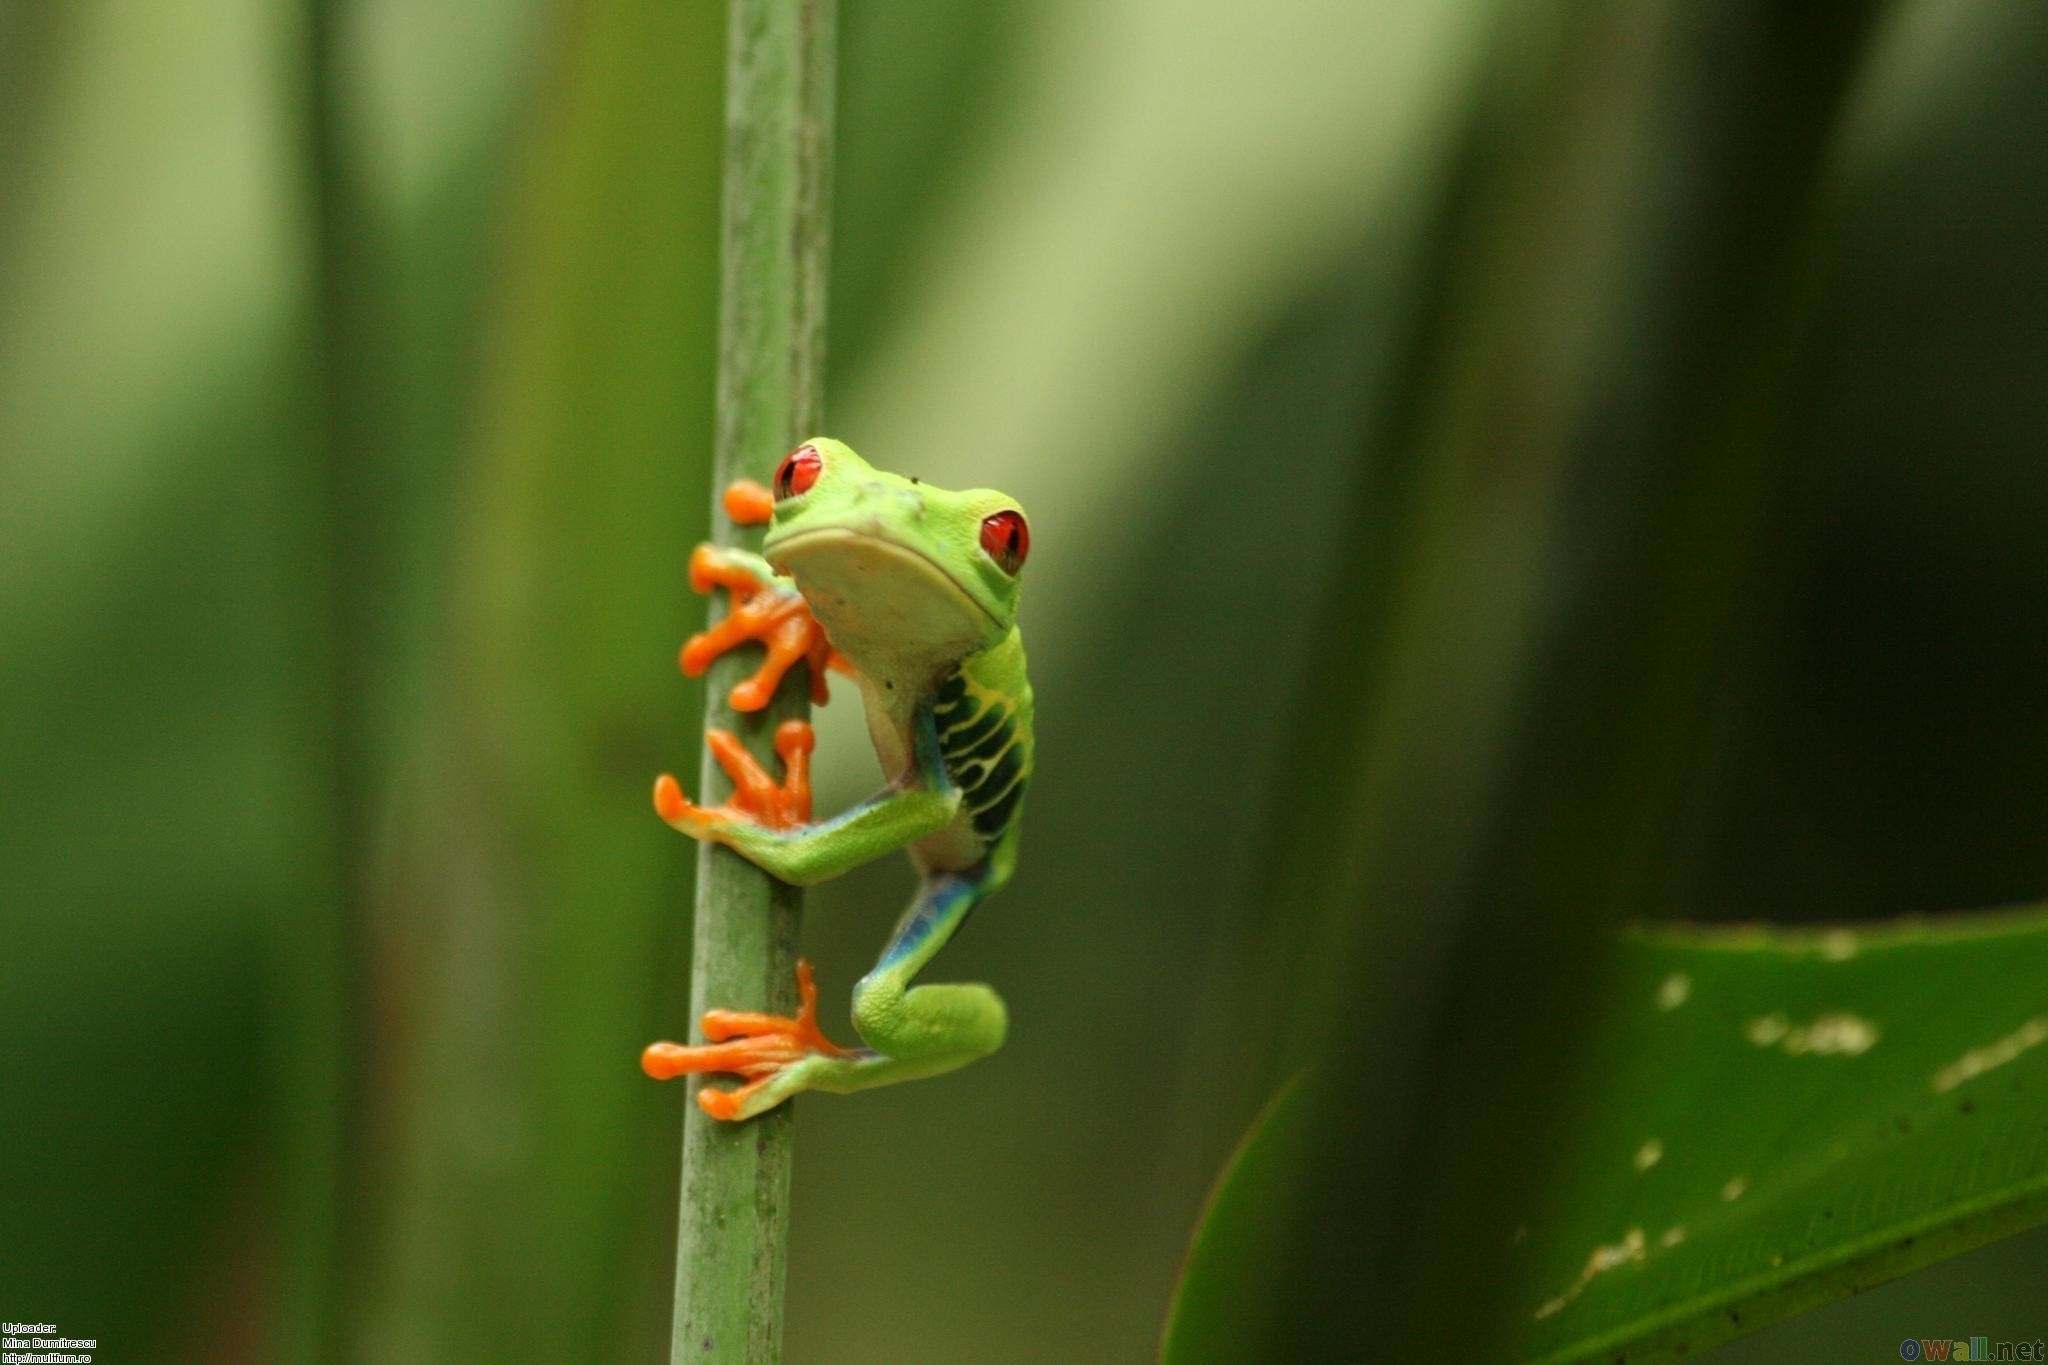 Res: 2048x1365, Frog Wallpaper High Definition